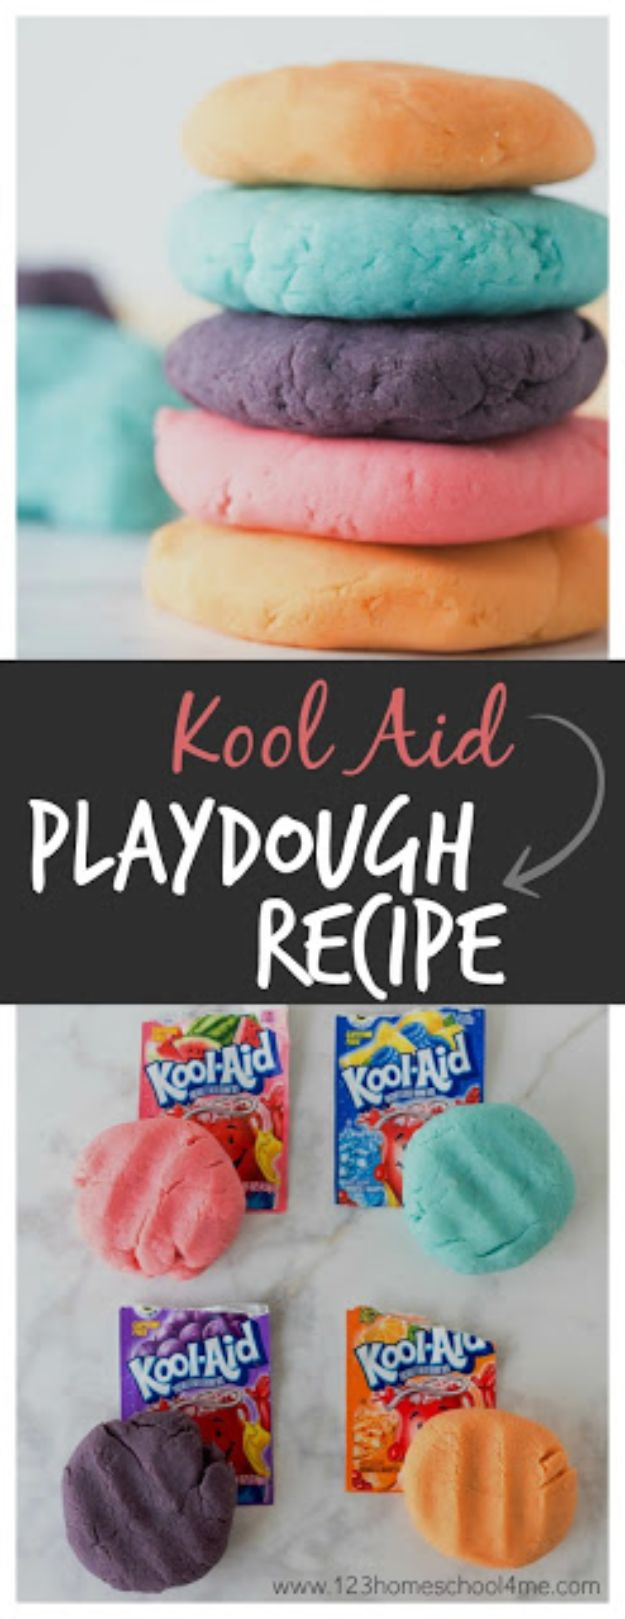 Easy Crafts for Kids - Kool Aid Playdough - Quick DIY Ideas for Children - Boys and Girls Love These Cool Craft Projects - Indoor and Outdoor Fun at Home - Cheap Playtime Activities https://diyjoy.com/best-easy-crafts-for-kids